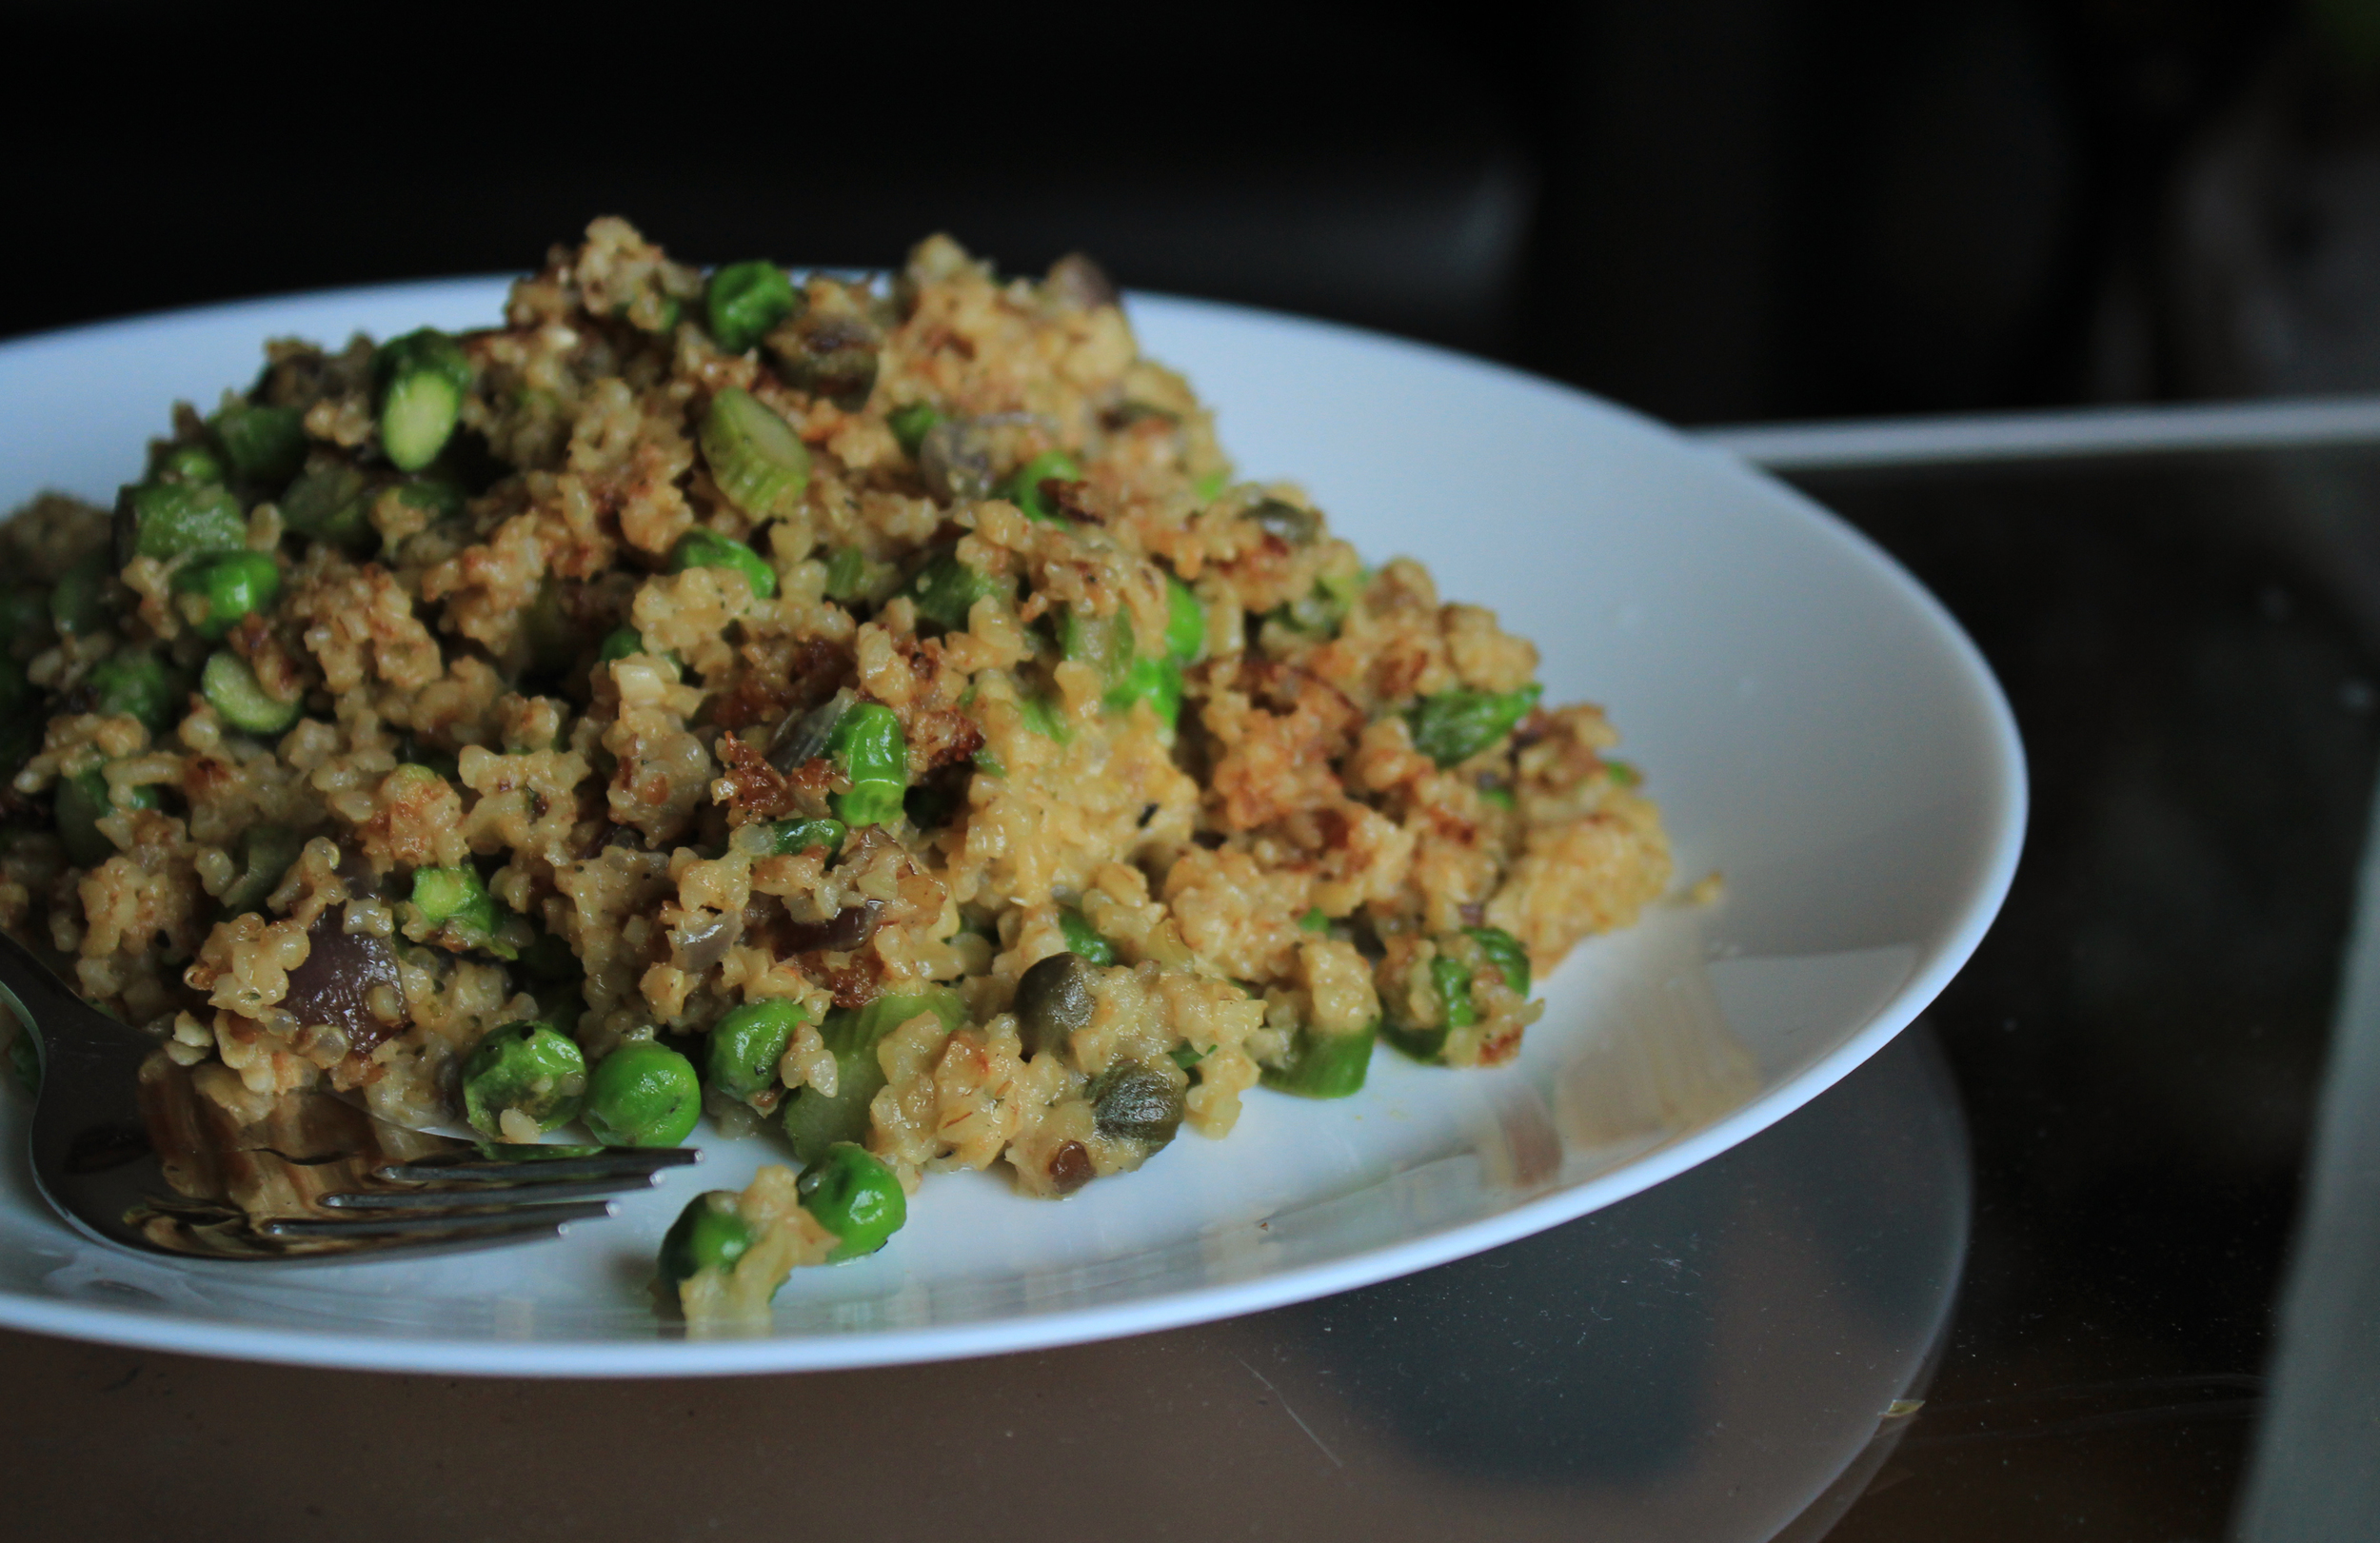 Fried bulgur with egg, asparangus, peas and scallions | by IN WHIRL OF INSPIRATION